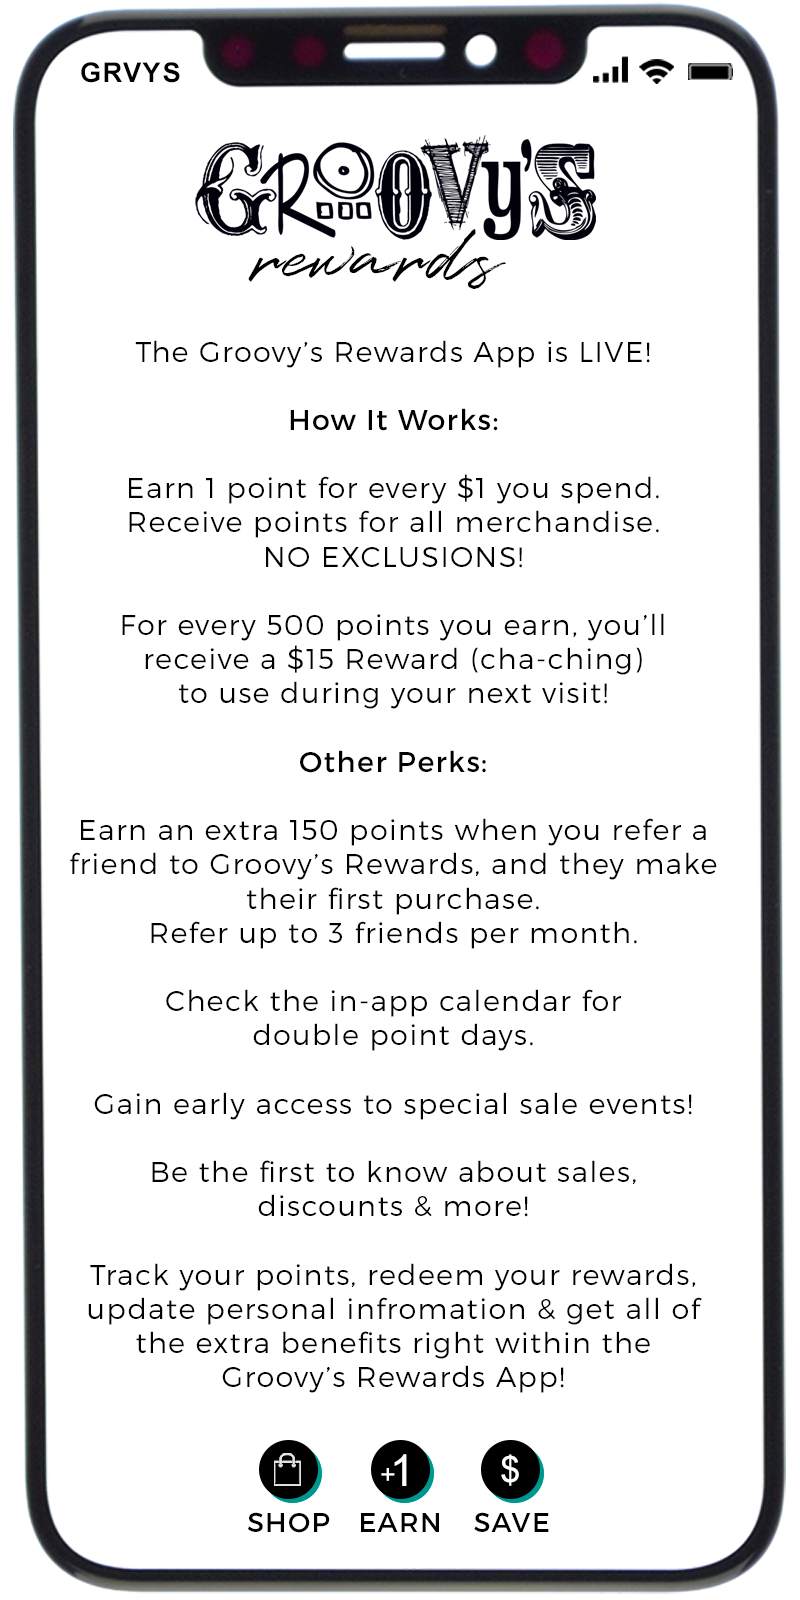 Groovy's Rewards App Details